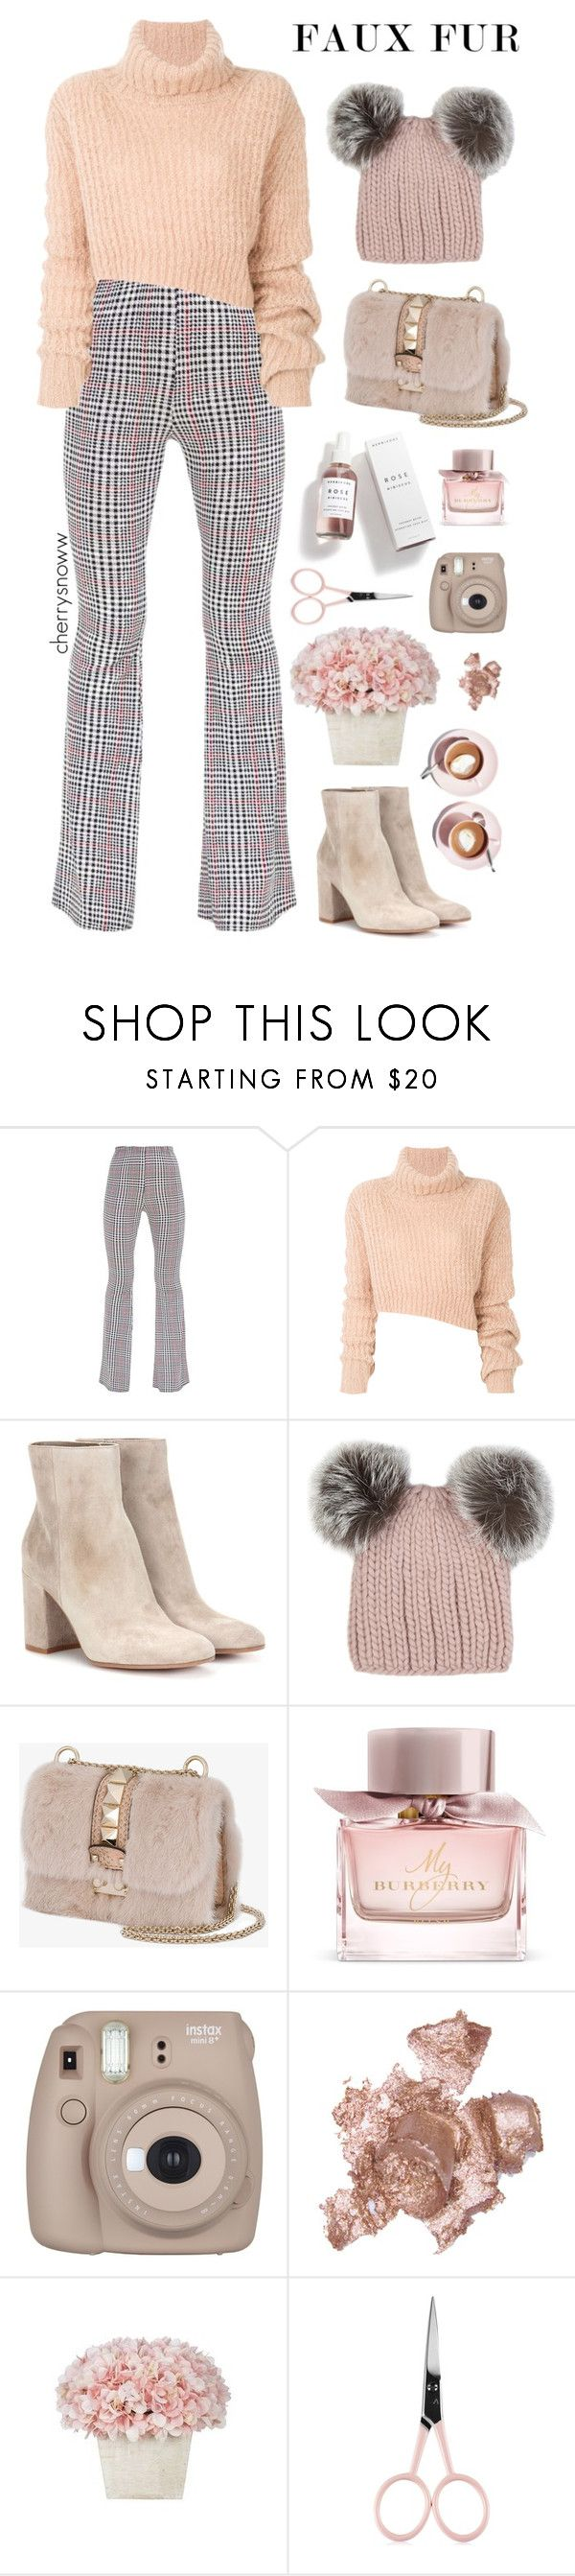 """""""Faux fur"""" by cherrysnoww ❤ liked on Polyvore featuring Ann Demeulemeester, Gianvito Rossi, Eugenia Kim, Valentino, Burberry, Herbivore, Fujifilm, By Terry, Anastasia Beverly Hills and Martha Stewart"""